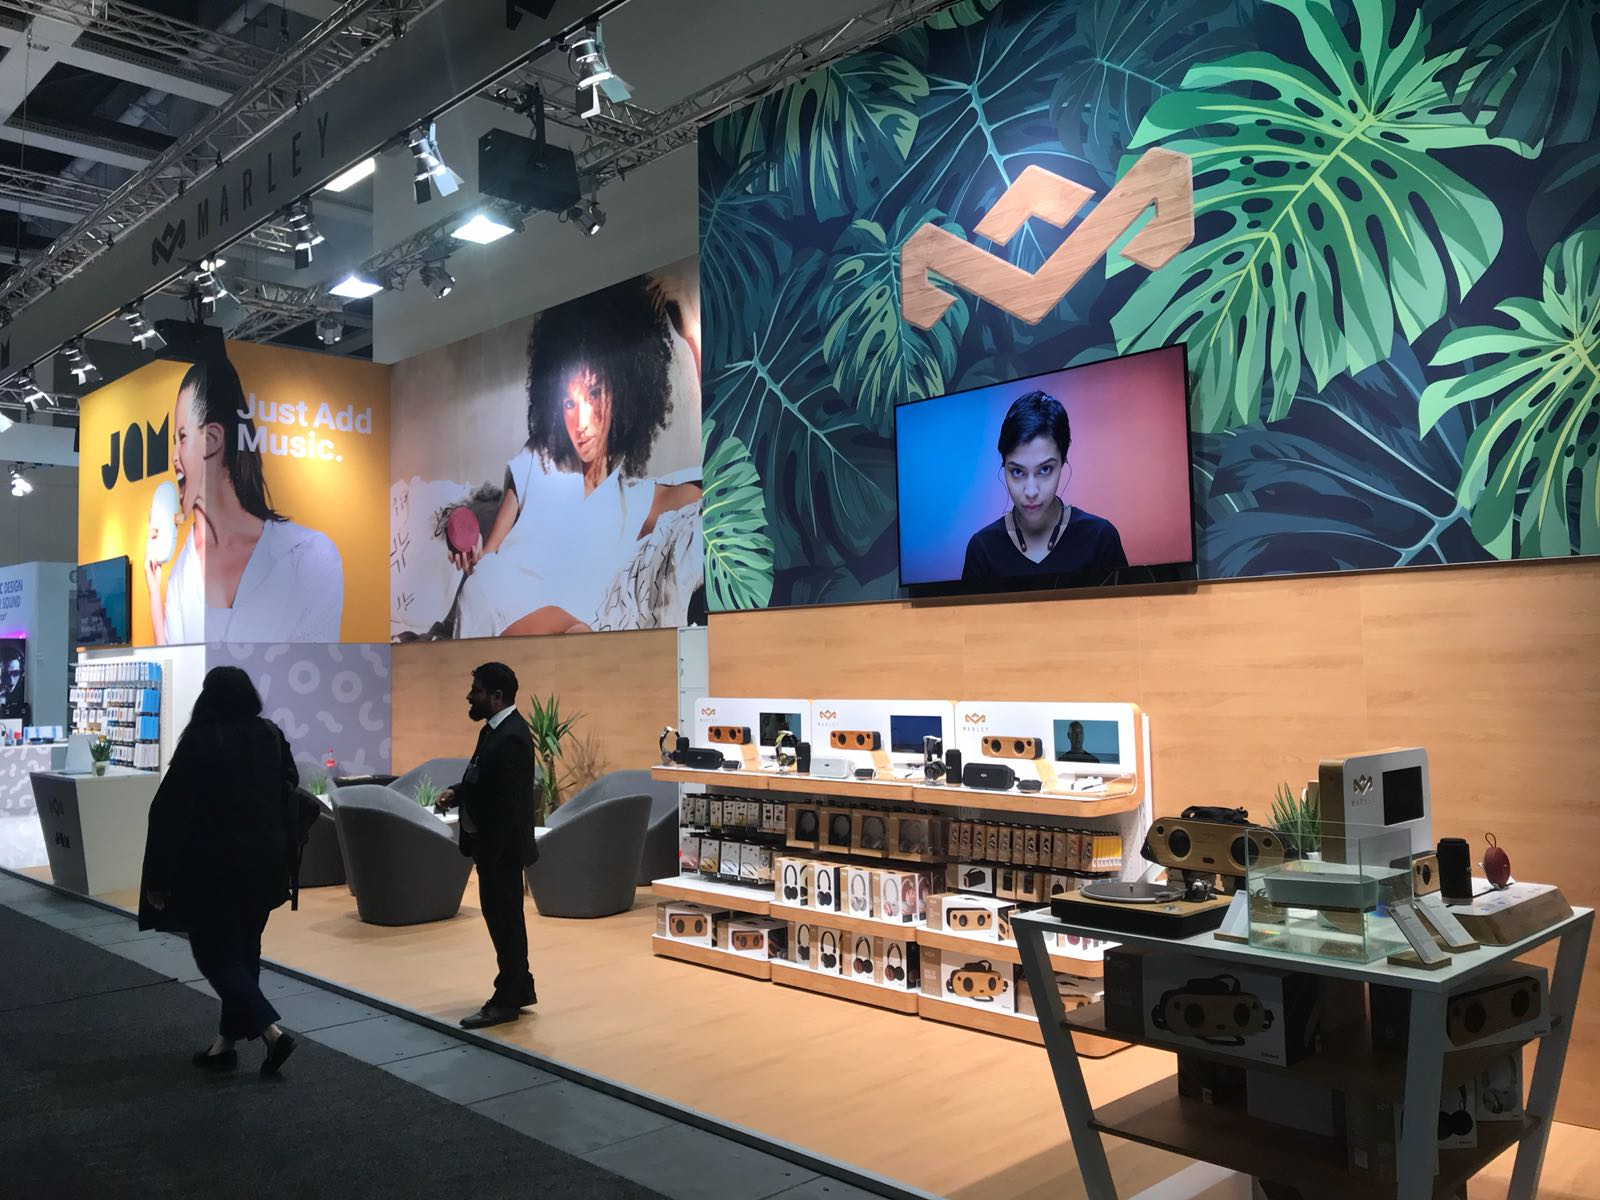 Der Messestand von The House of Marley und JAM